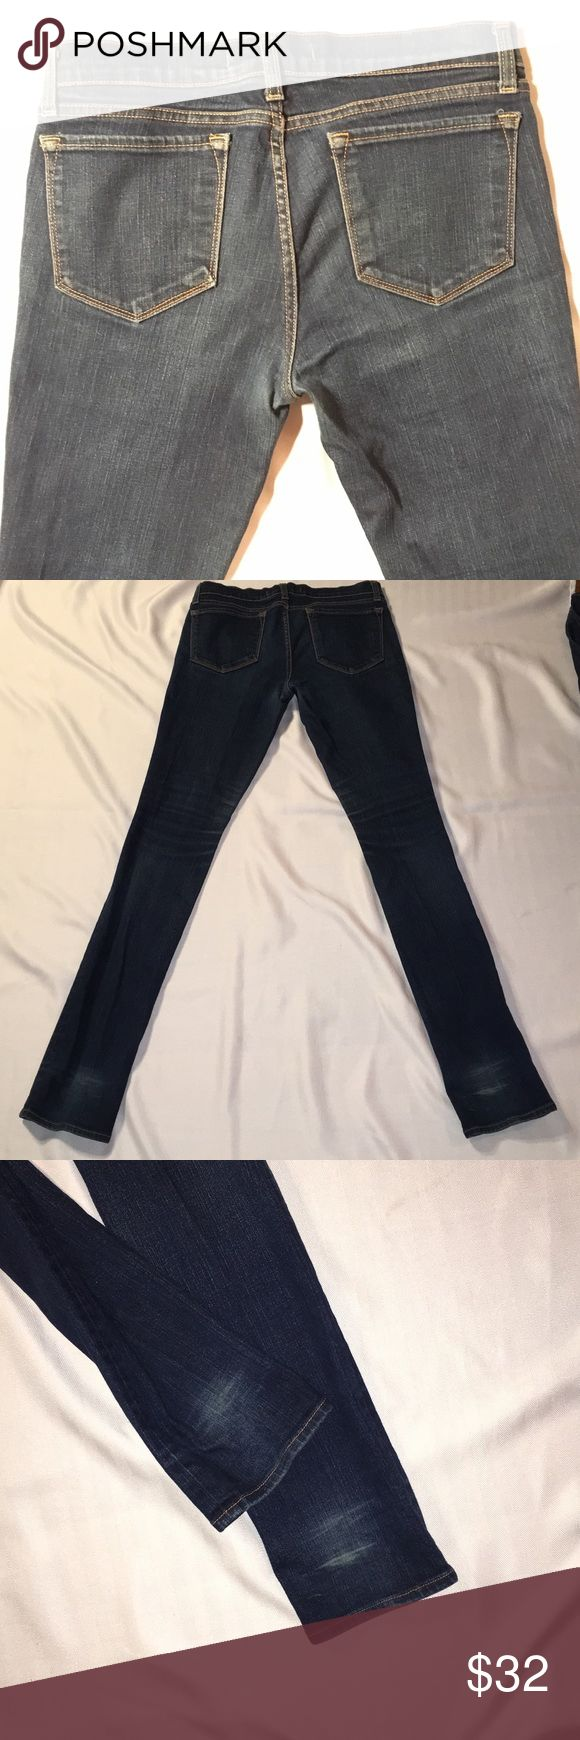 "J Brand Skinny Jeans. Good condition J Brand skinny jeans.  Inseam about 33"".  Smoke free, pet free home J Brand Jeans Skinny"